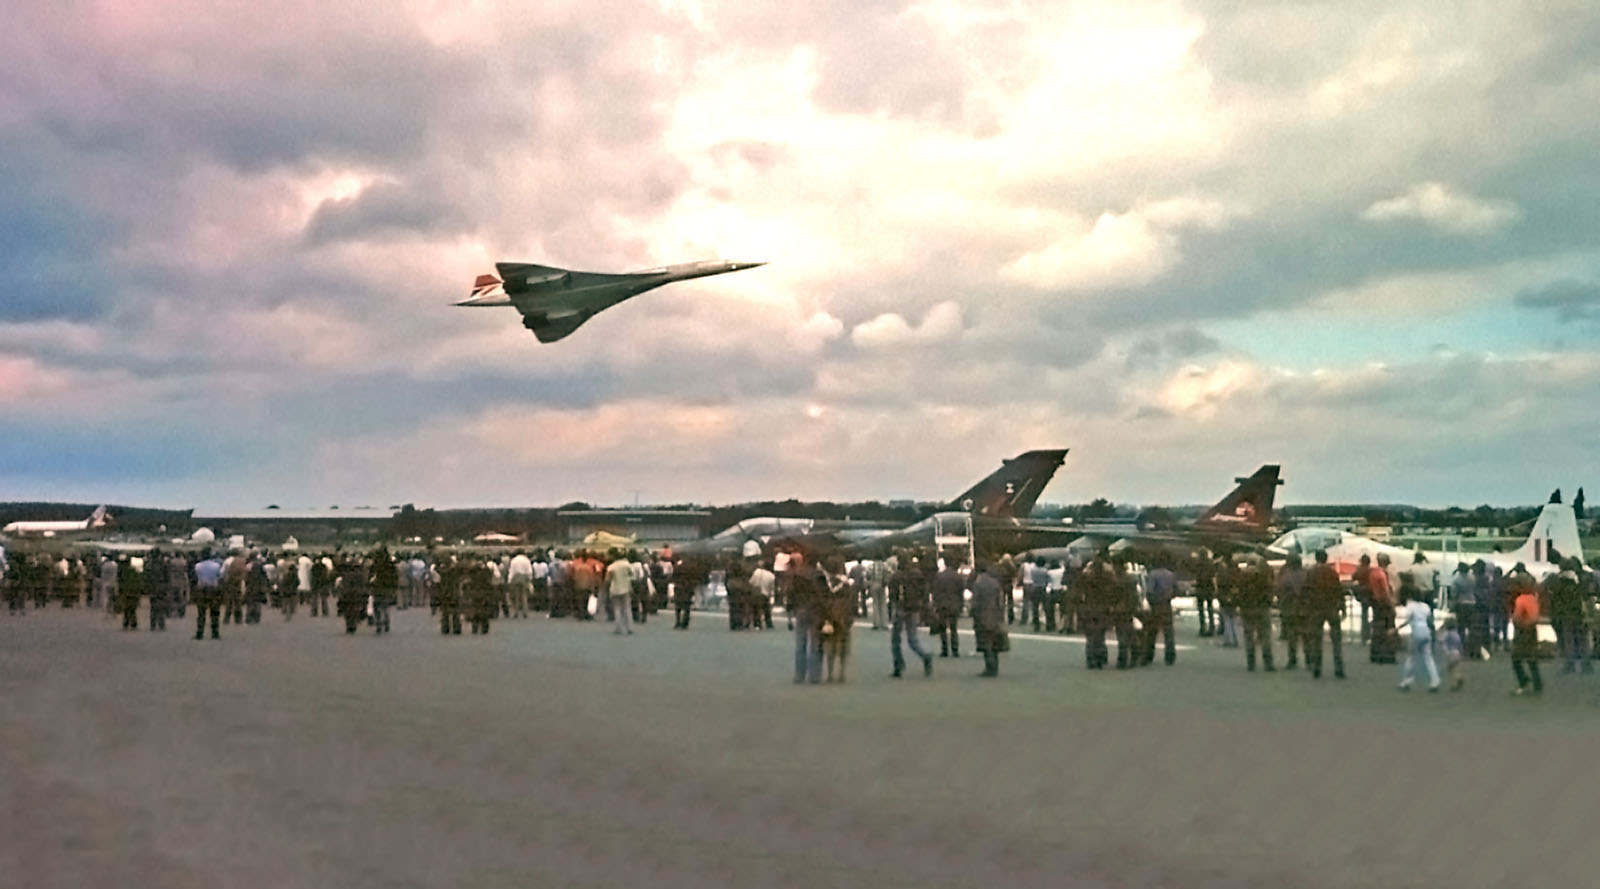 The British Airways Concorde at Farnborough Airshow in 1978.